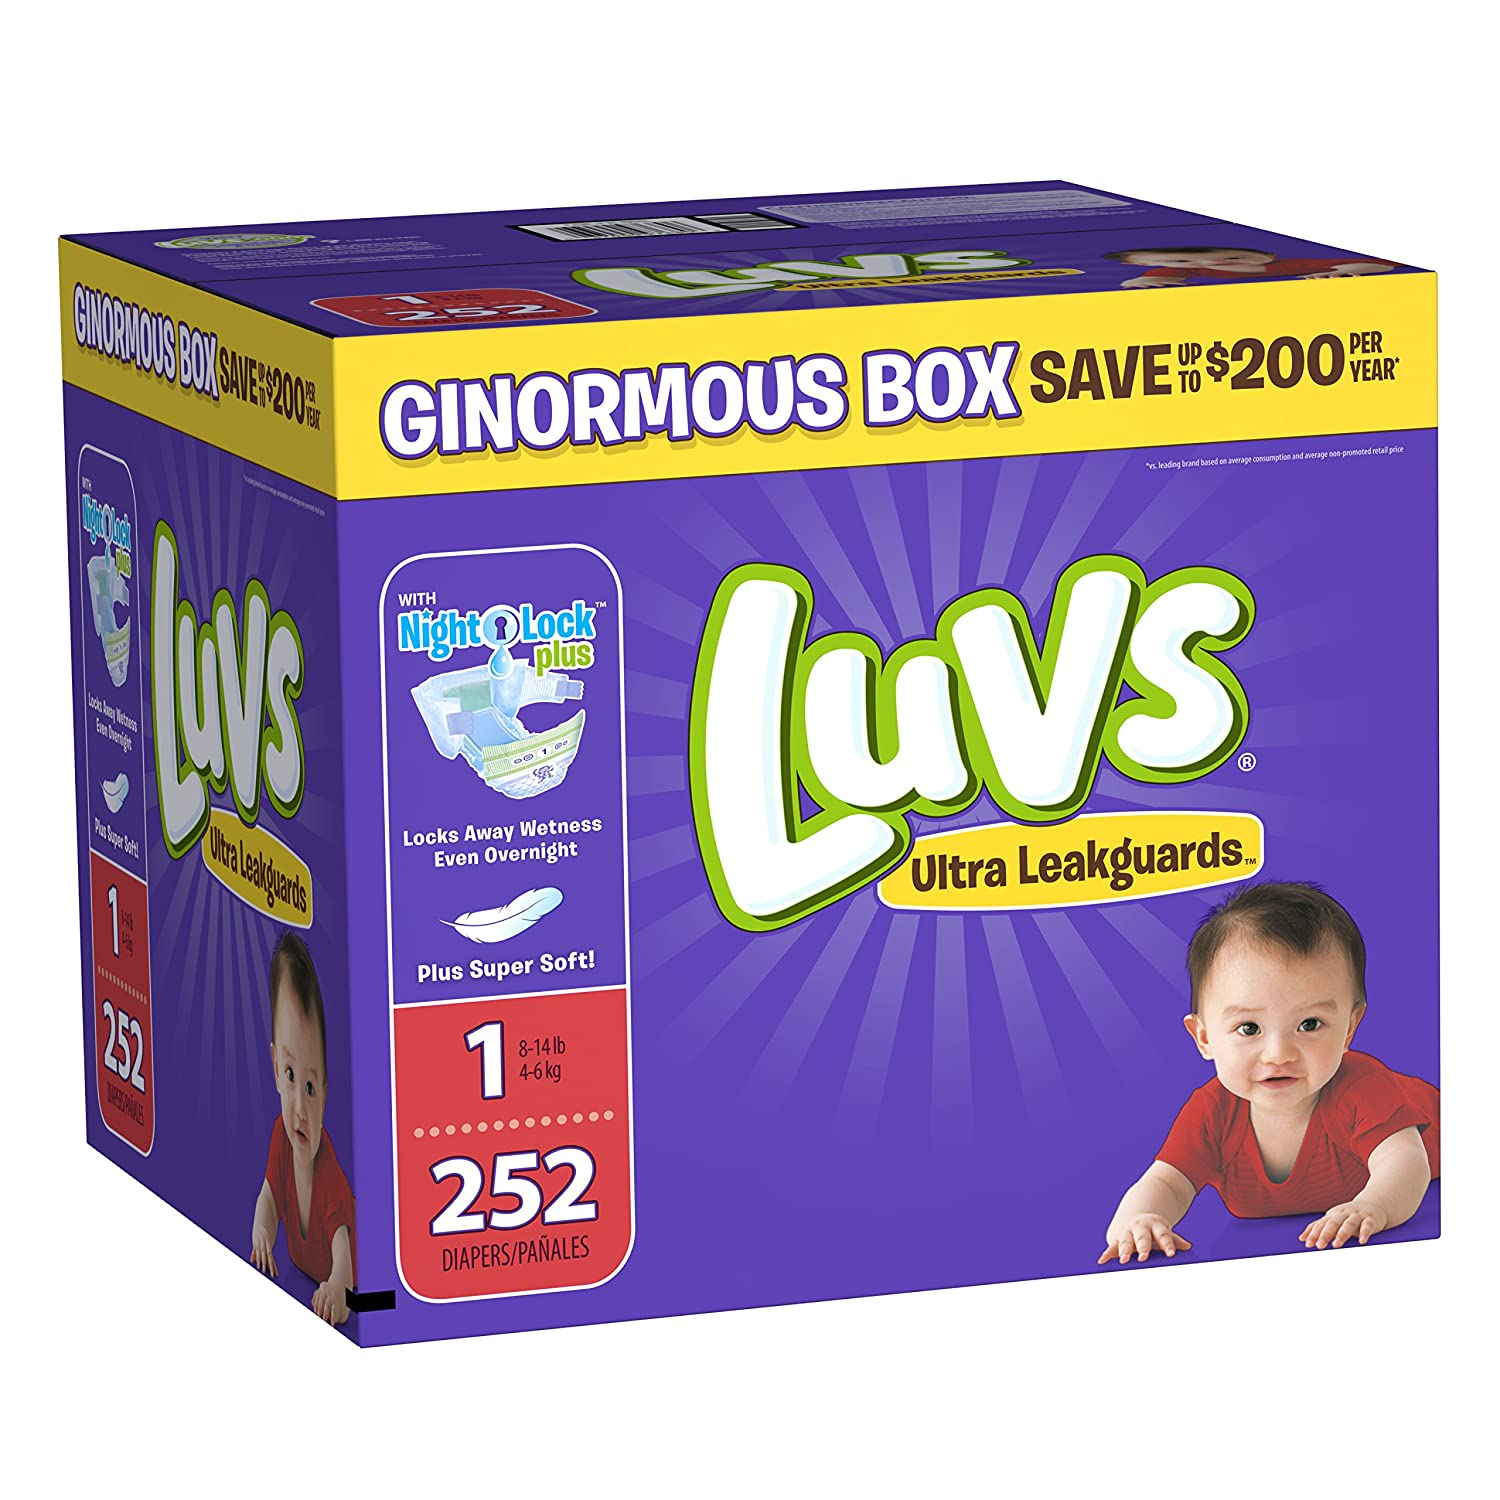 Luvs Ultra Leakguards Disposable Baby Diapers ONE MONTH SUPPLY 228 Count Size 2